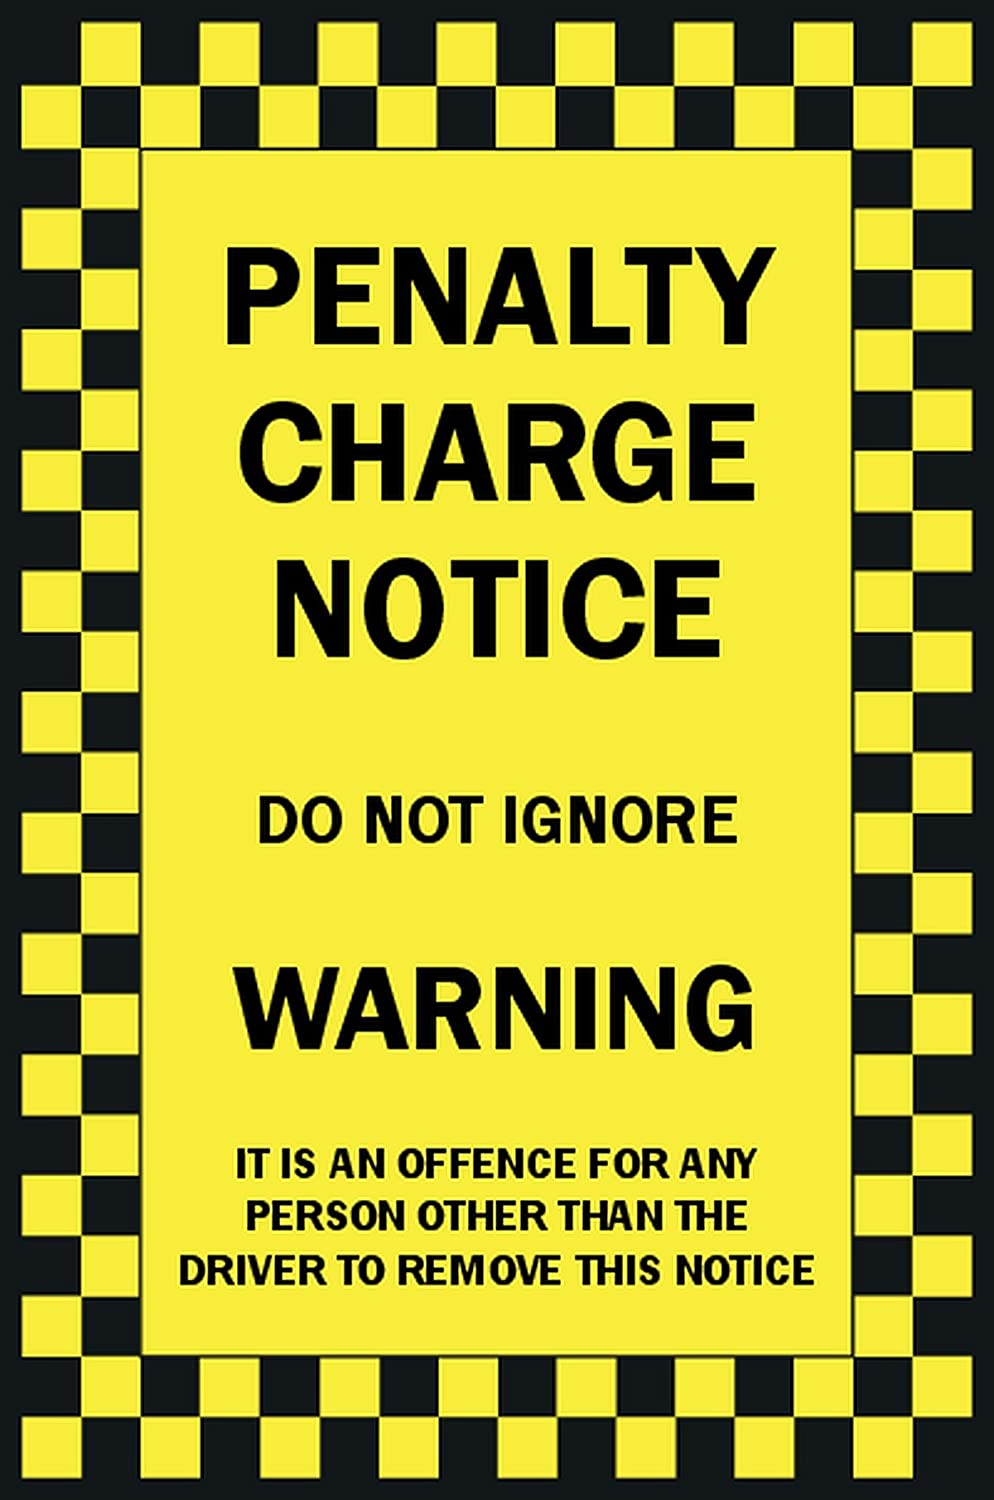 It's just an image of Printable Fake Parking Tickets intended for phony